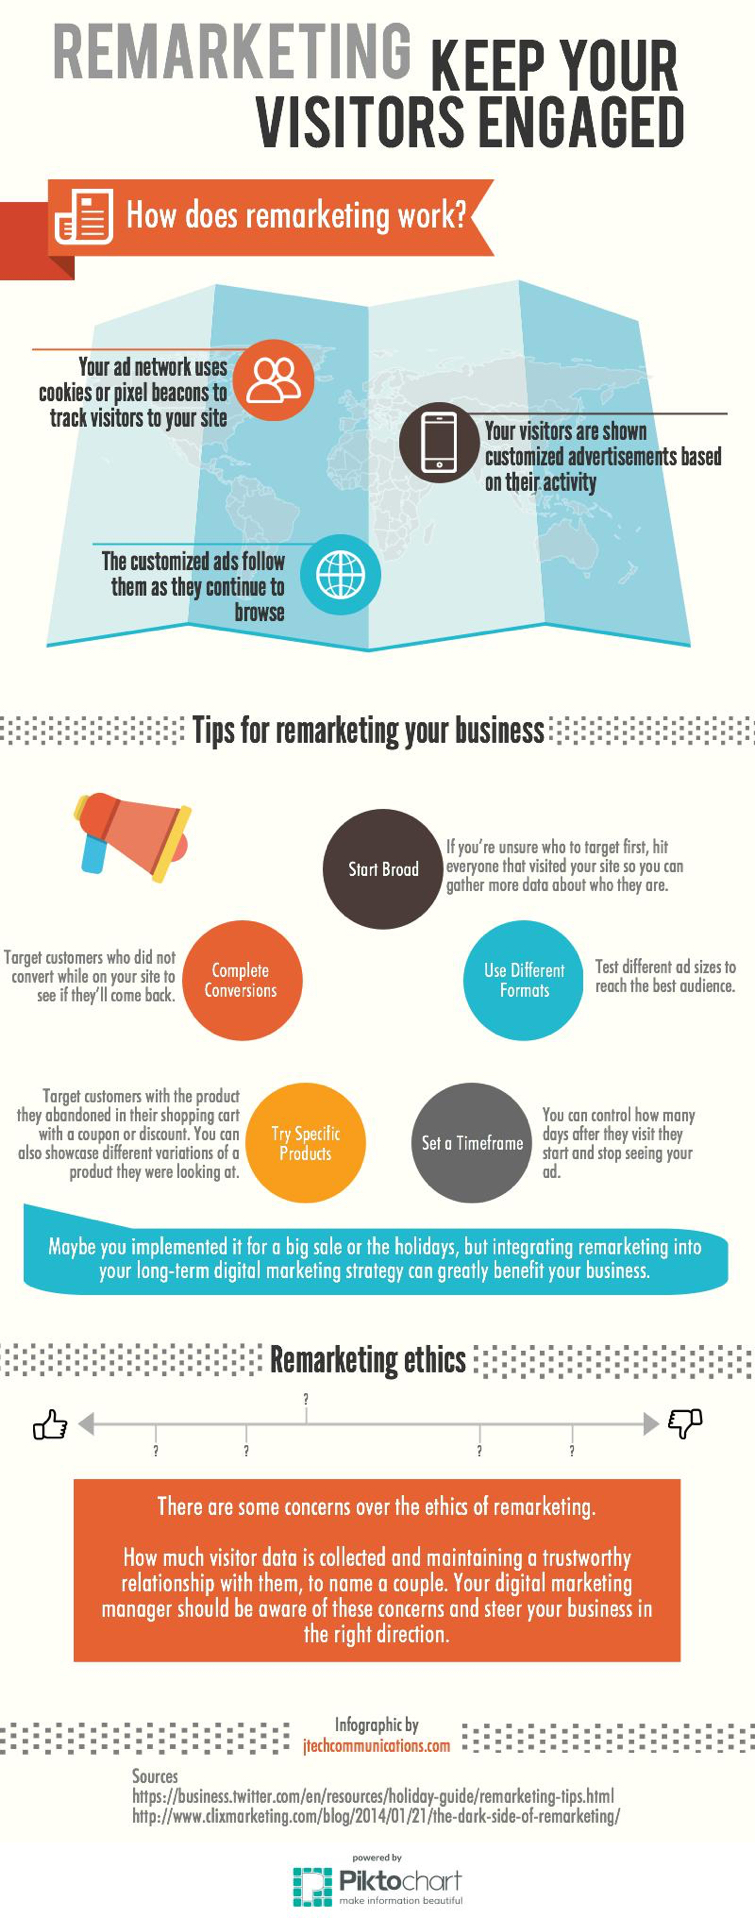 JTech remarketing infographic.